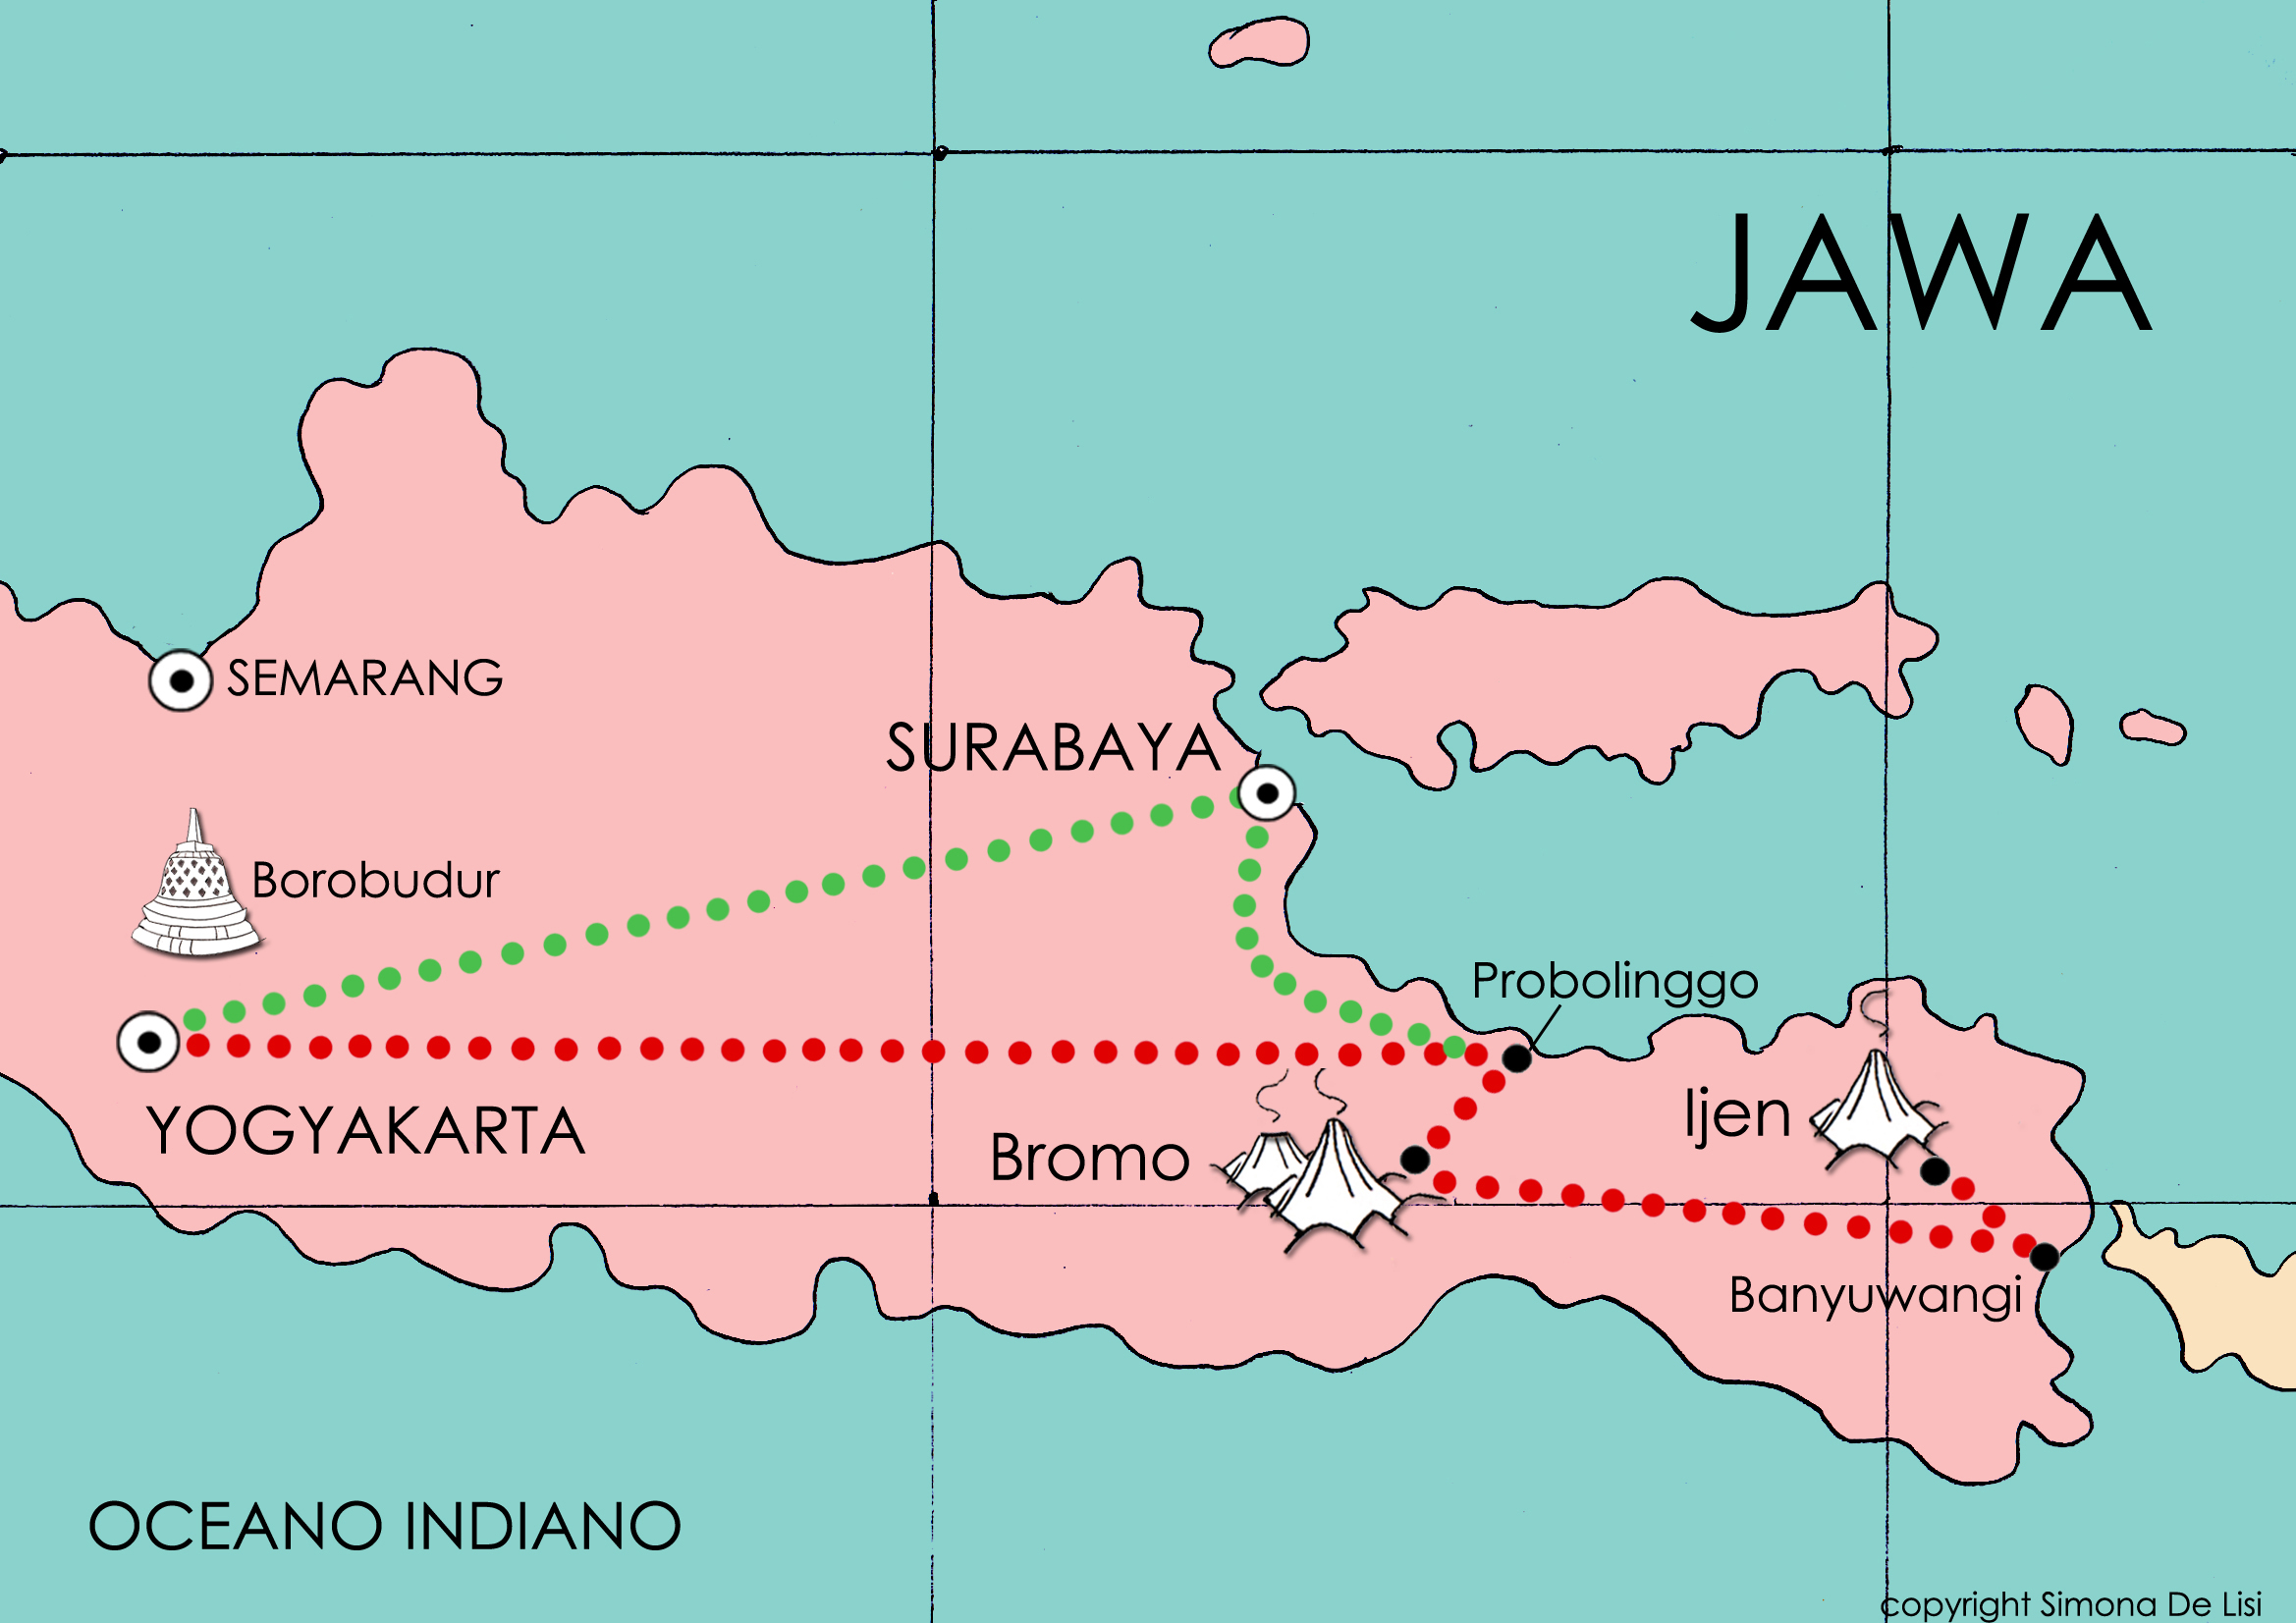 Mappa del mio itinerario in Indonesia. Itinerario in Indonesia: da Java alle Gili.